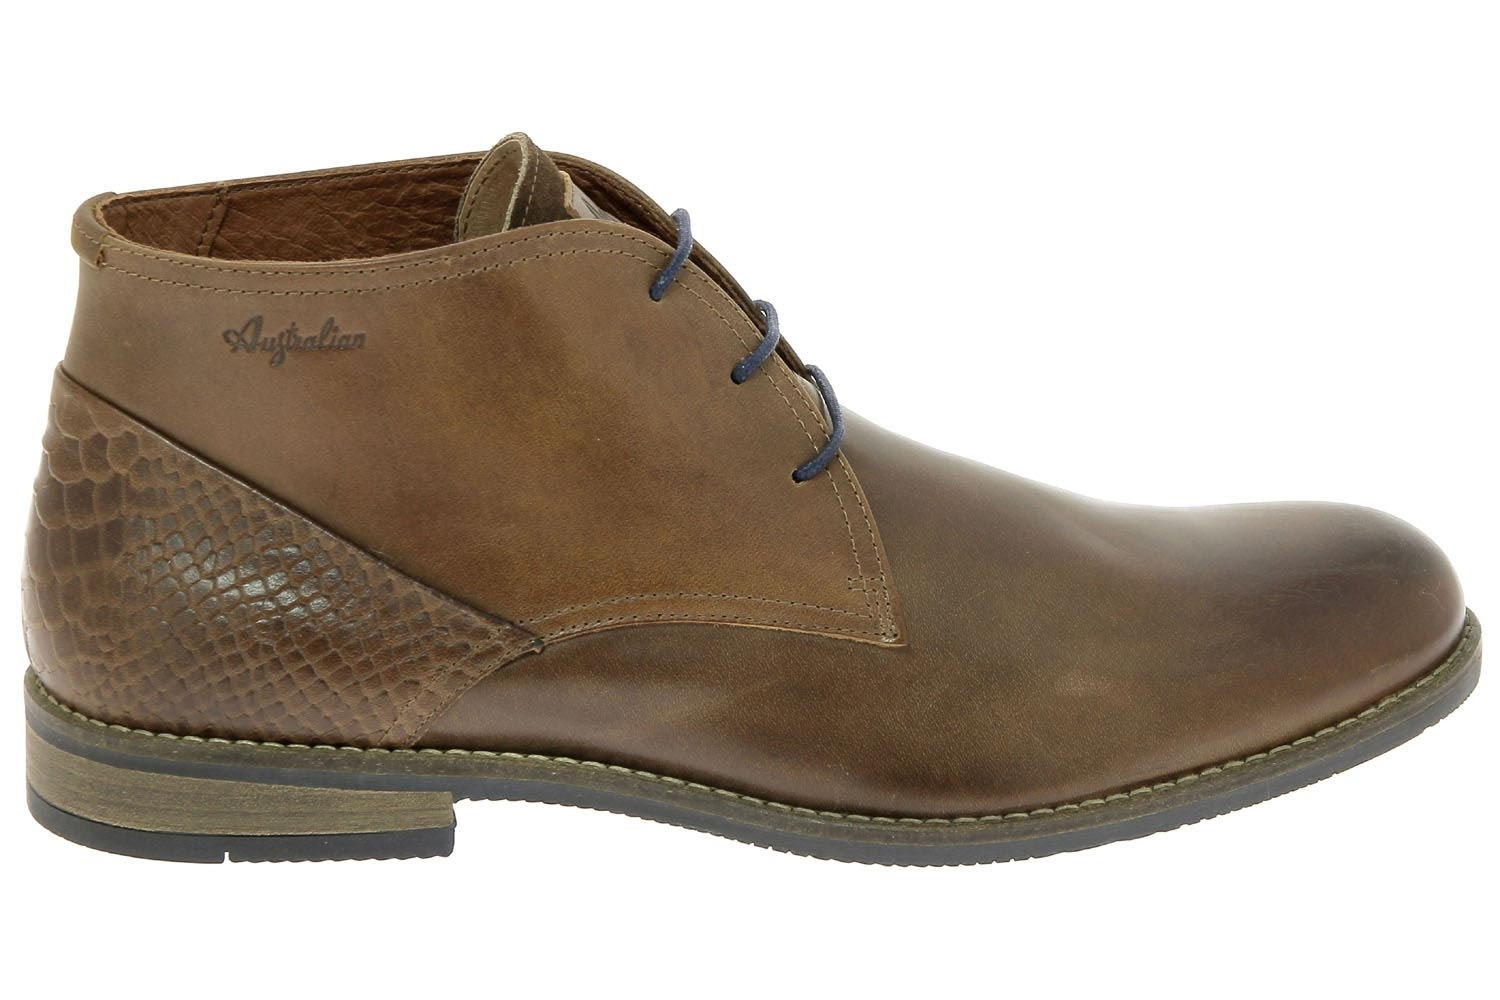 Chaussures Cuir Homme Homme Chaussures Australian Cuir Australian Chaussures NwPvO0ym8n